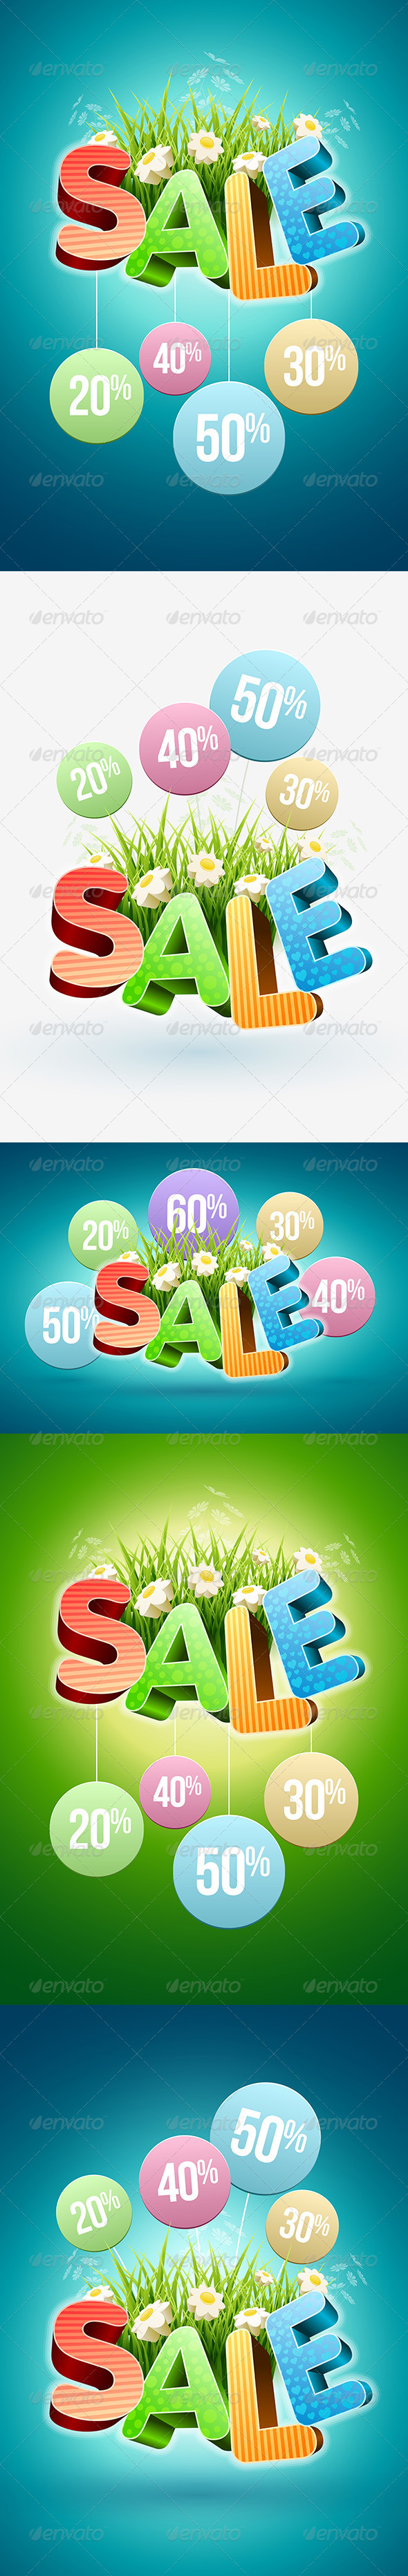 Spring and Summer Sale Poster - Miscellaneous Seasons/Holidays